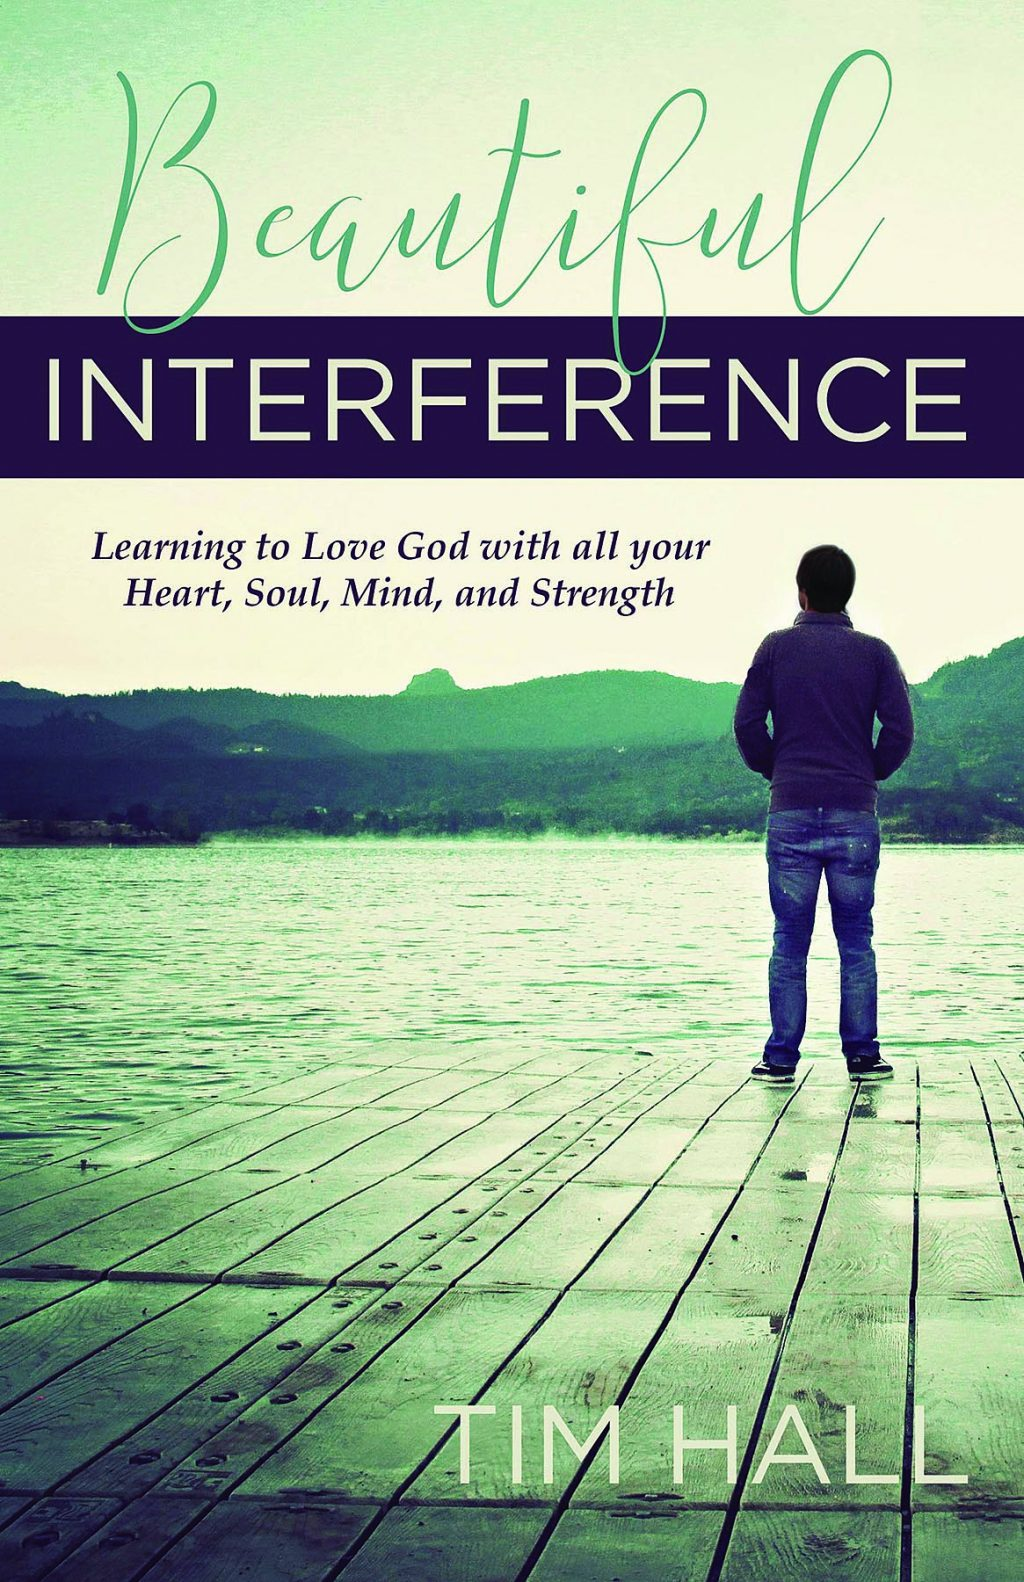 Tim Hall. Beautiful Interference: Learning to Love God with All Your Heart, Soul, Mind, and Strength. Sisters, Ore.: Deep River Books LLC, 2019. 112 pages.